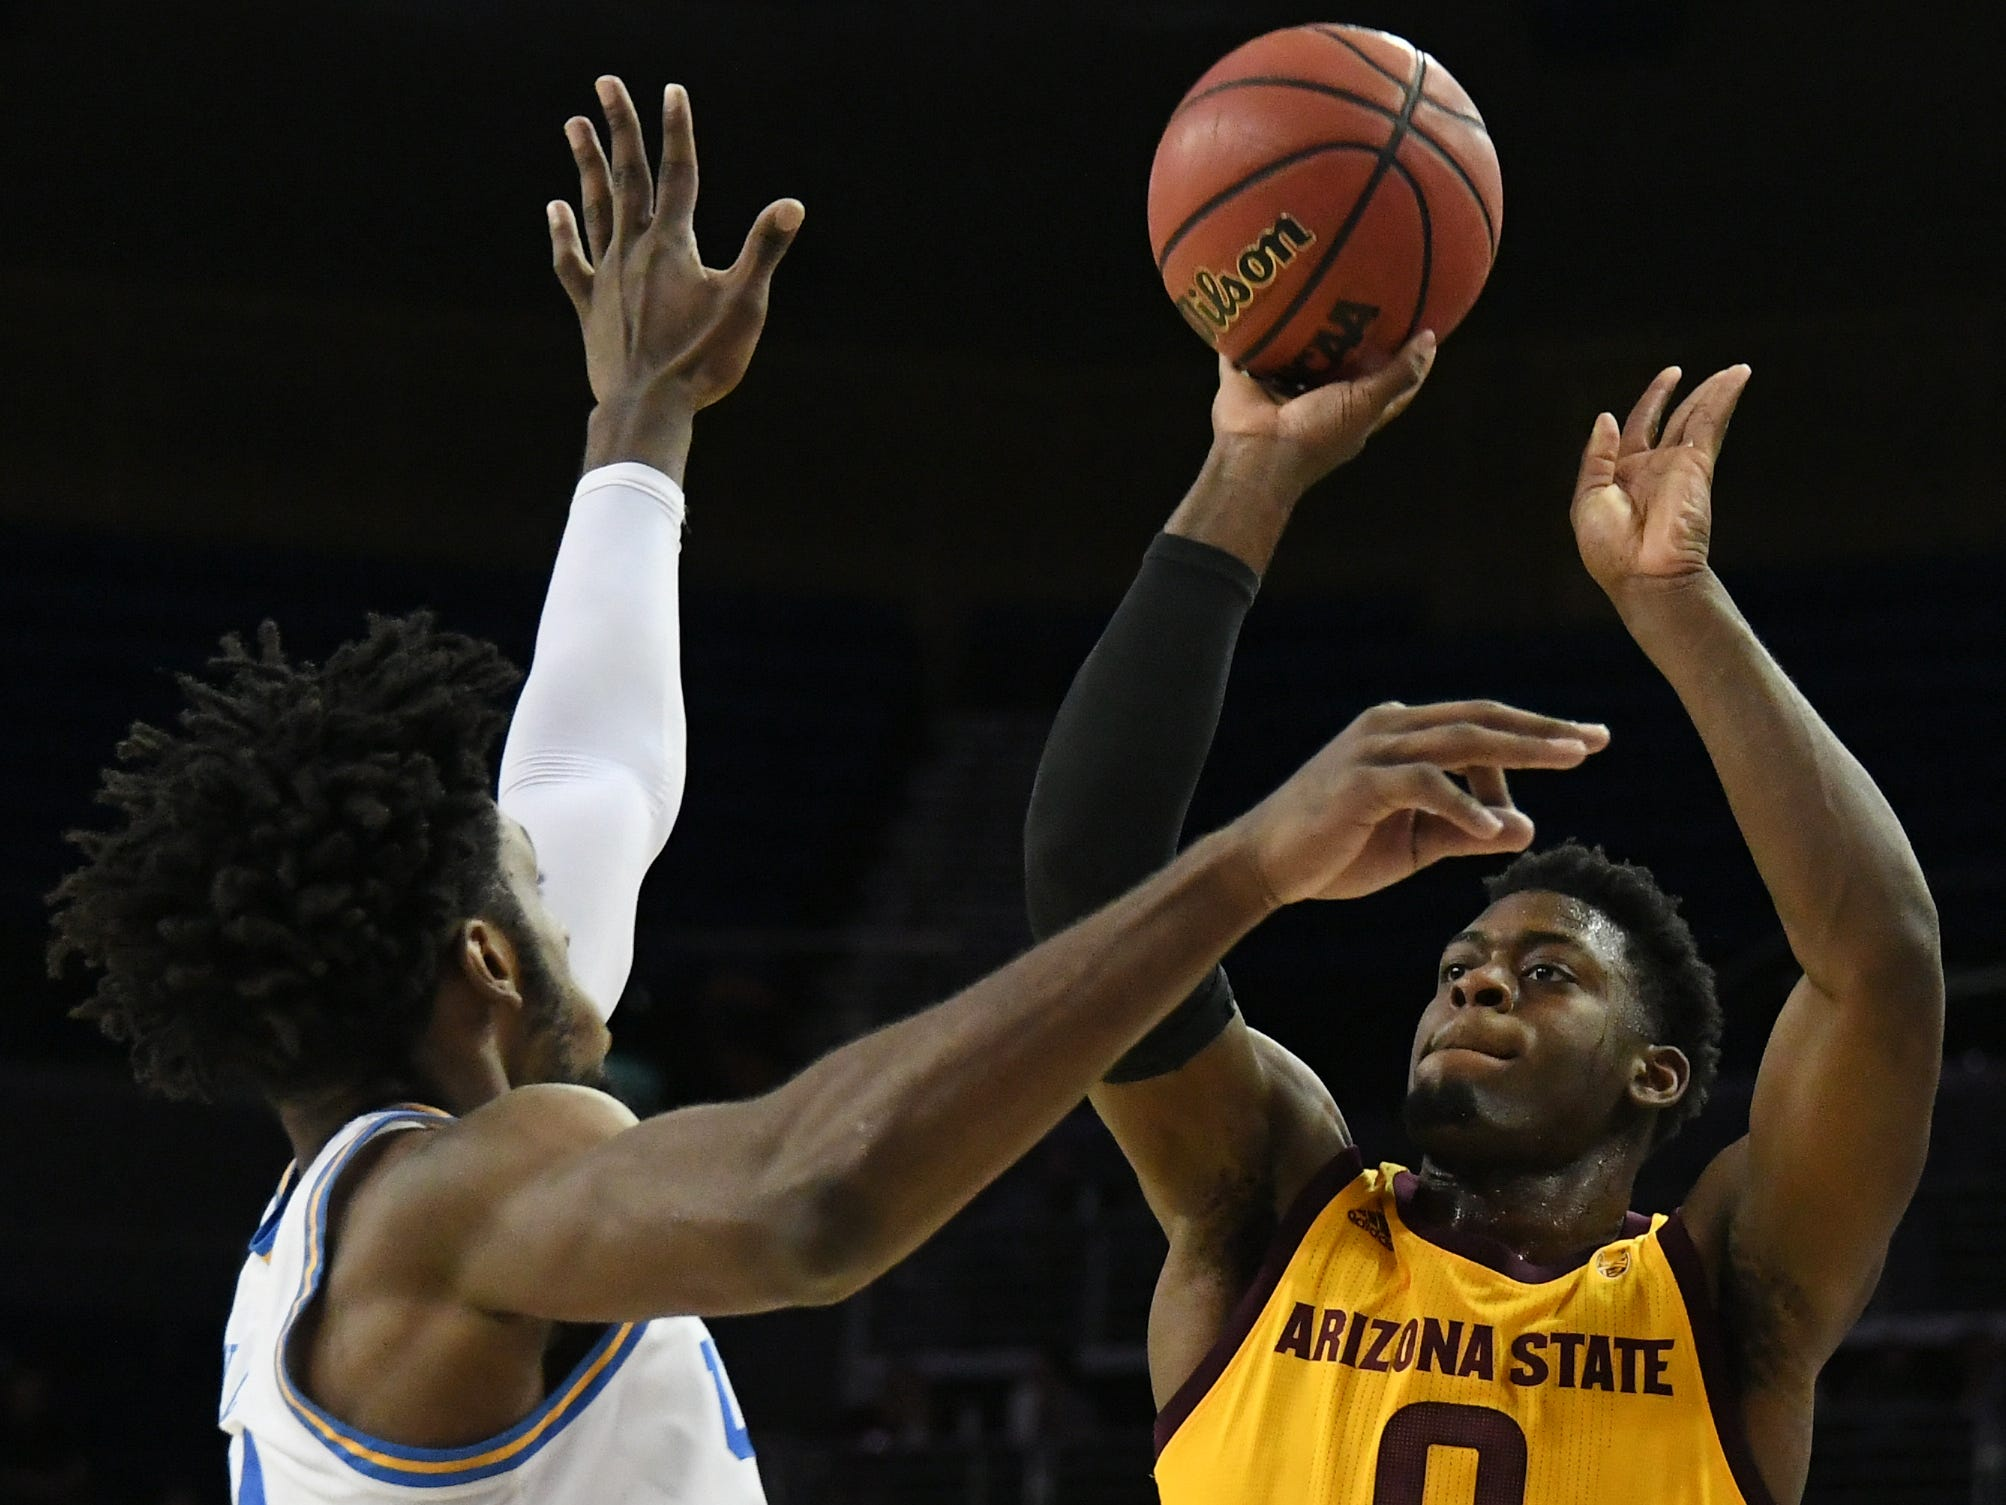 Jan 24, 2019; Los Angeles, CA, USA; Arizona State Sun Devils guard Luguentz Dort (0) shoots against UCLA Bruins guard Jalen Hill (24) during the first half at Pauley Pavilion. Mandatory Credit: Richard Mackson-USA TODAY Sports